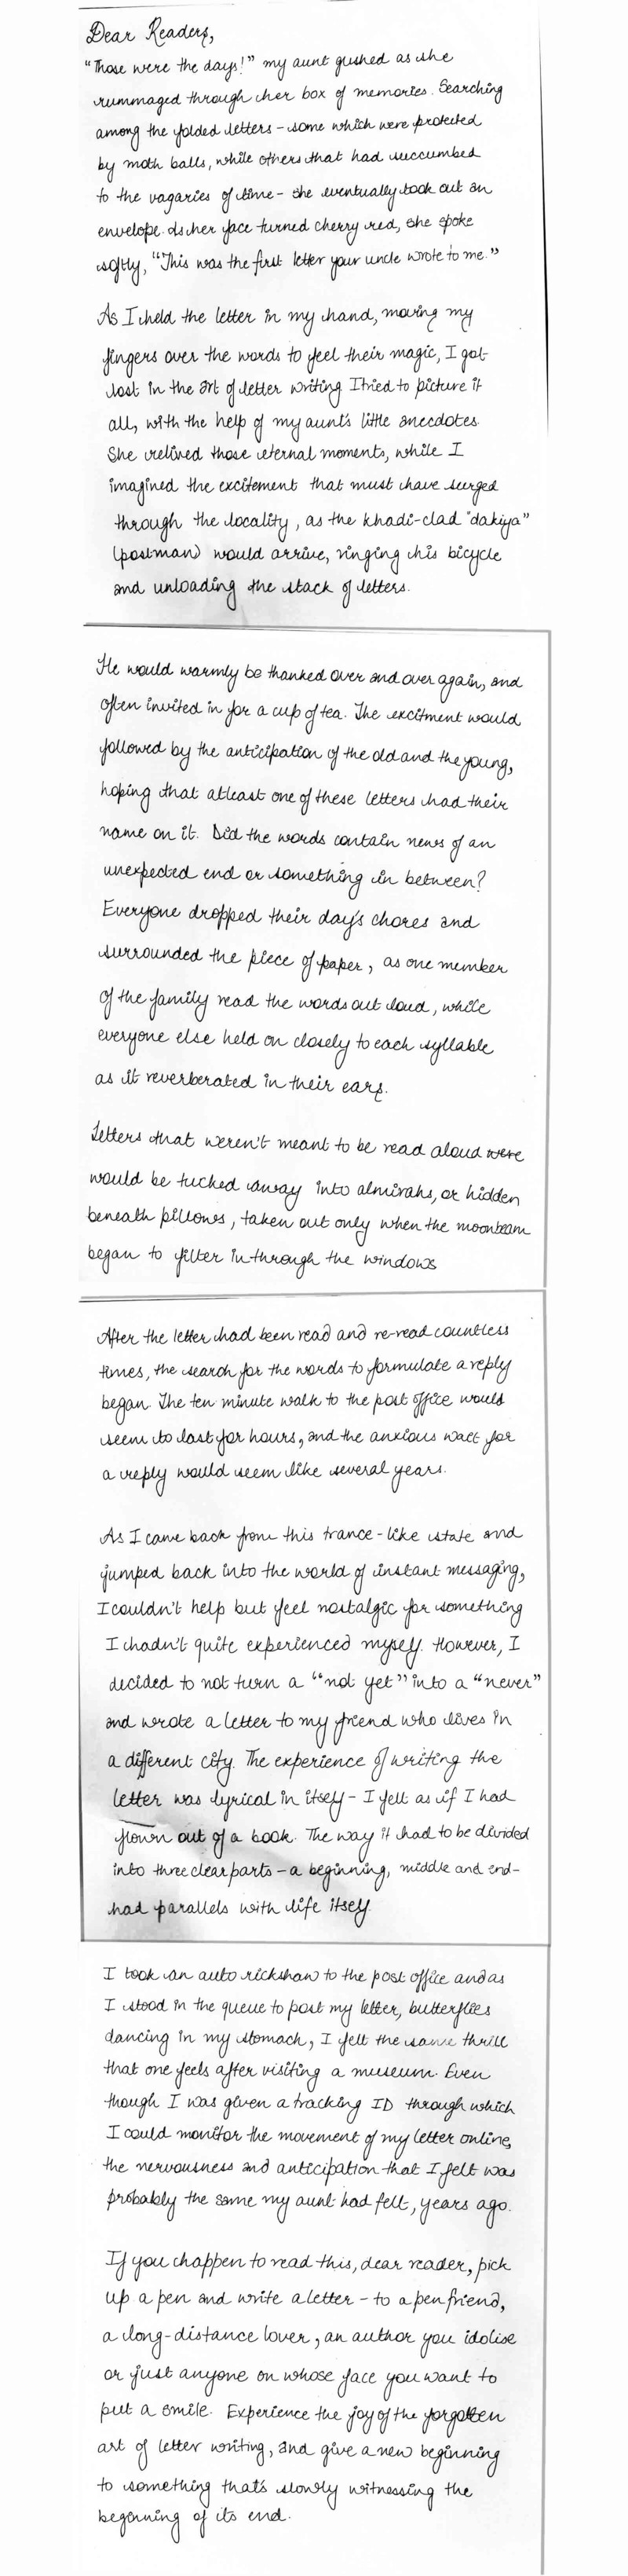 a handwritten letter about the lost art of letter writing